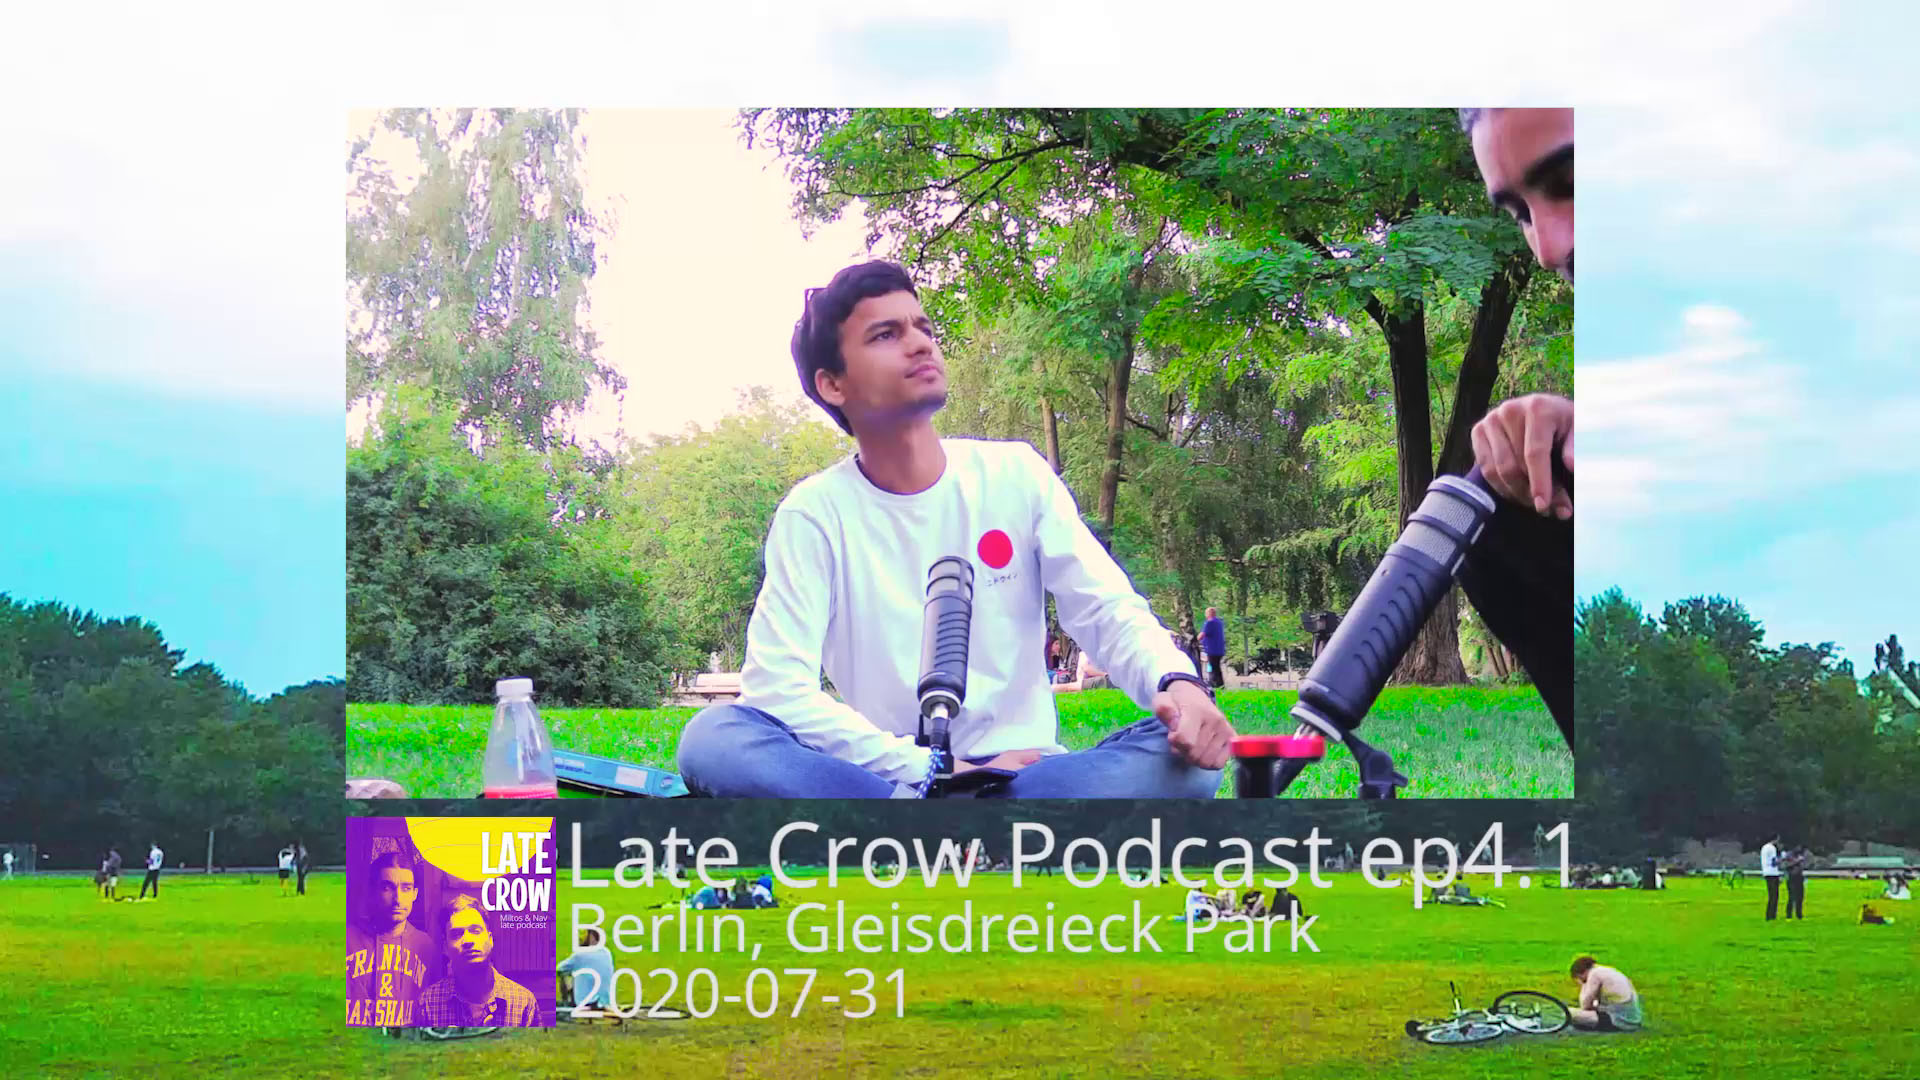 New small Late Crow Podcast episode 4.1